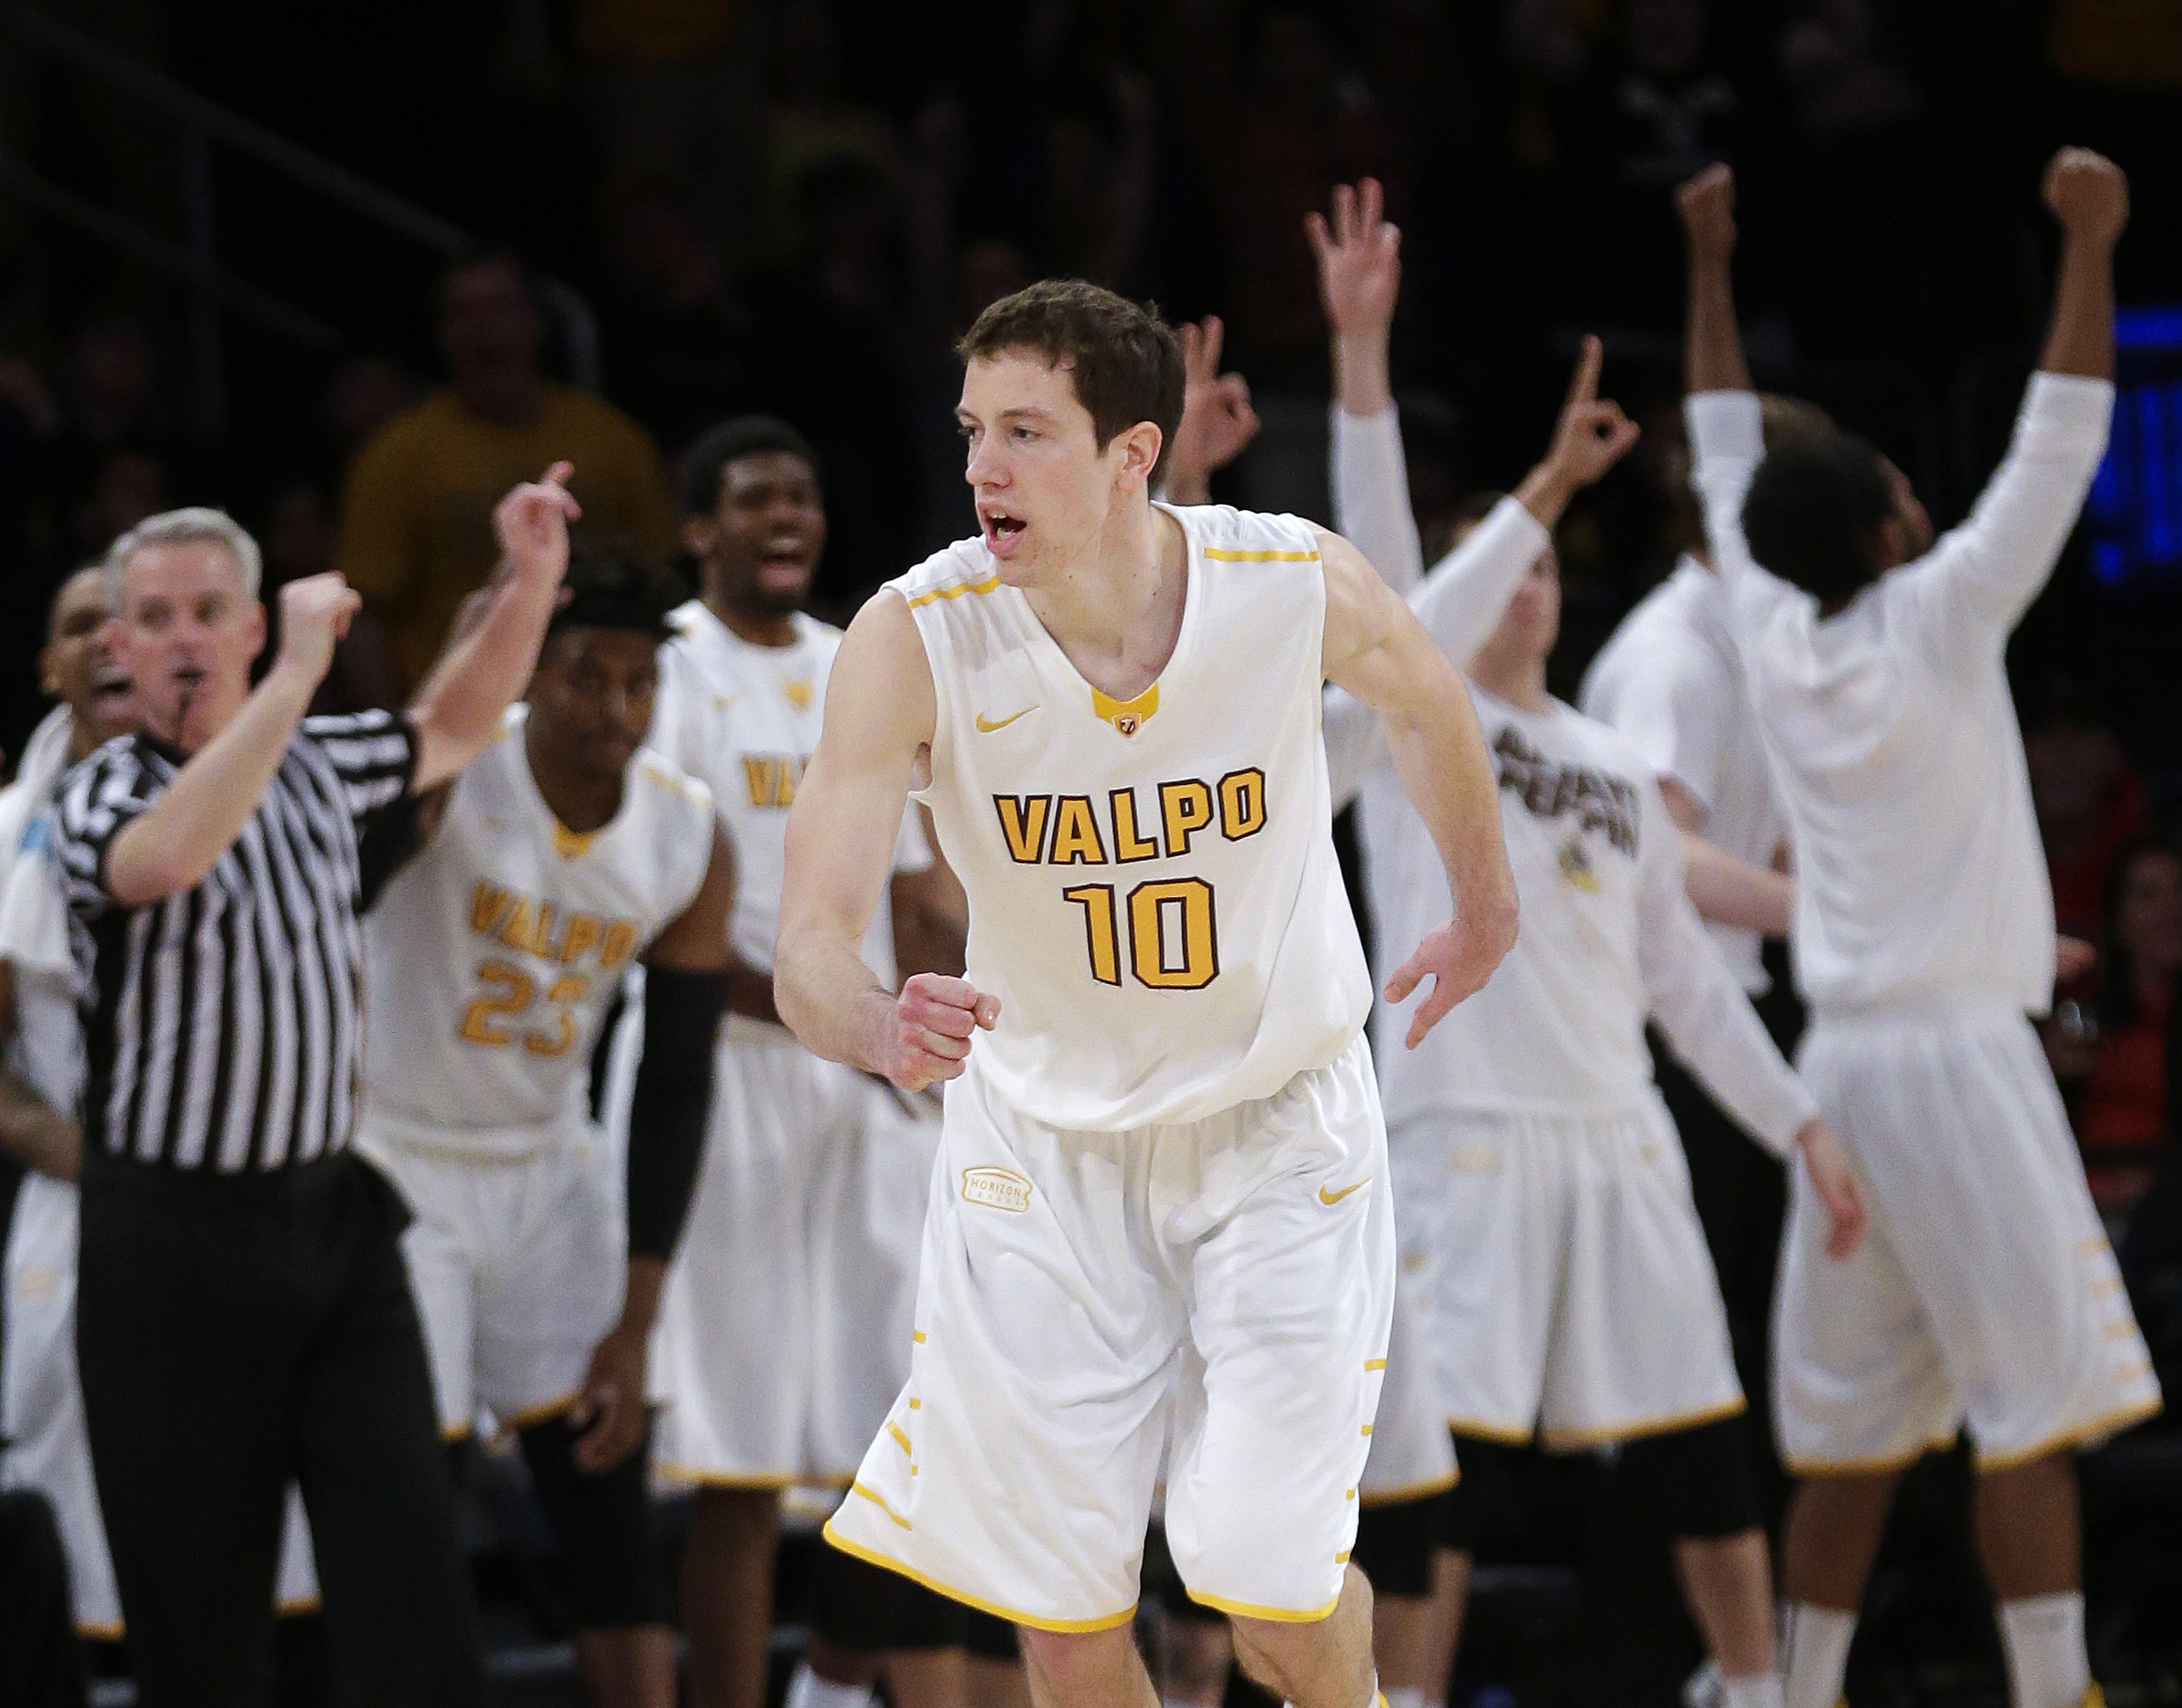 Valparaiso's David Skara (10) reacts after making a three point basket during the second half of an NCAA basketball game against BYU in the semifinals of the NIT on Tuesday, March 29, 2016, in New York. Valparaiso won 72-70. (AP Photo/Frank Franklin II)